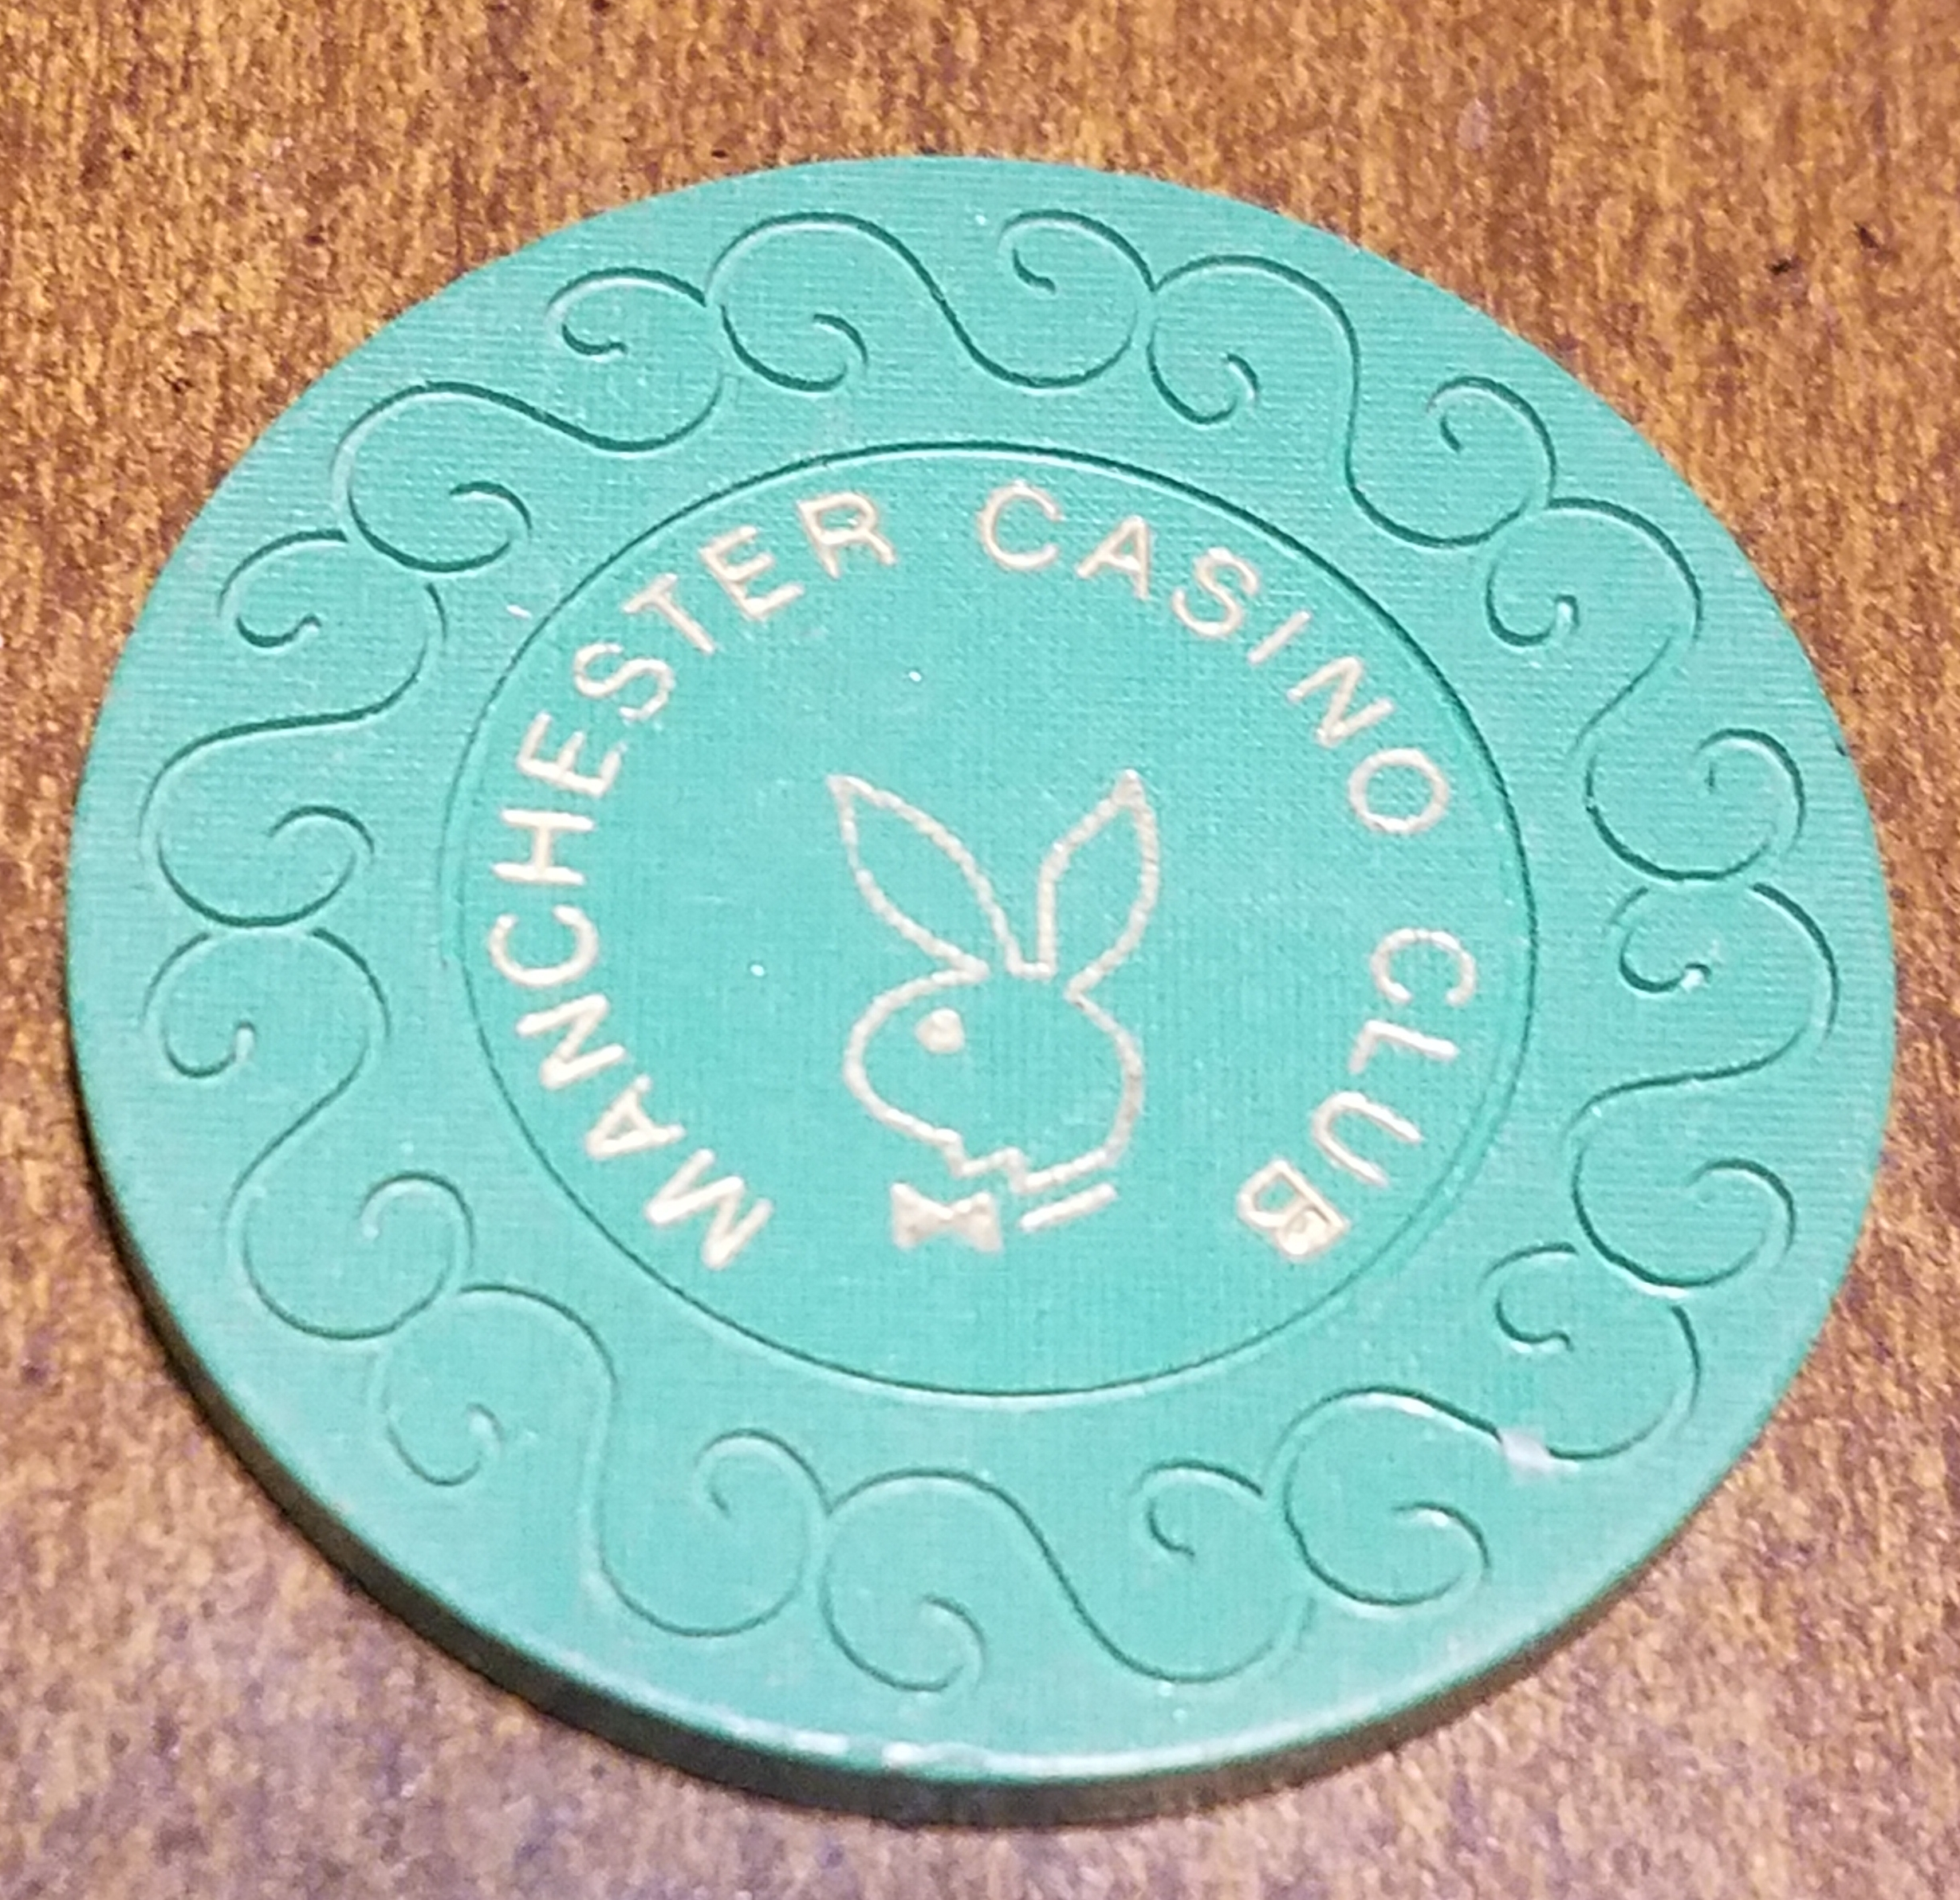 20 PENCE MANCHESTER CASINO CHIP PLAYBOY CLUB